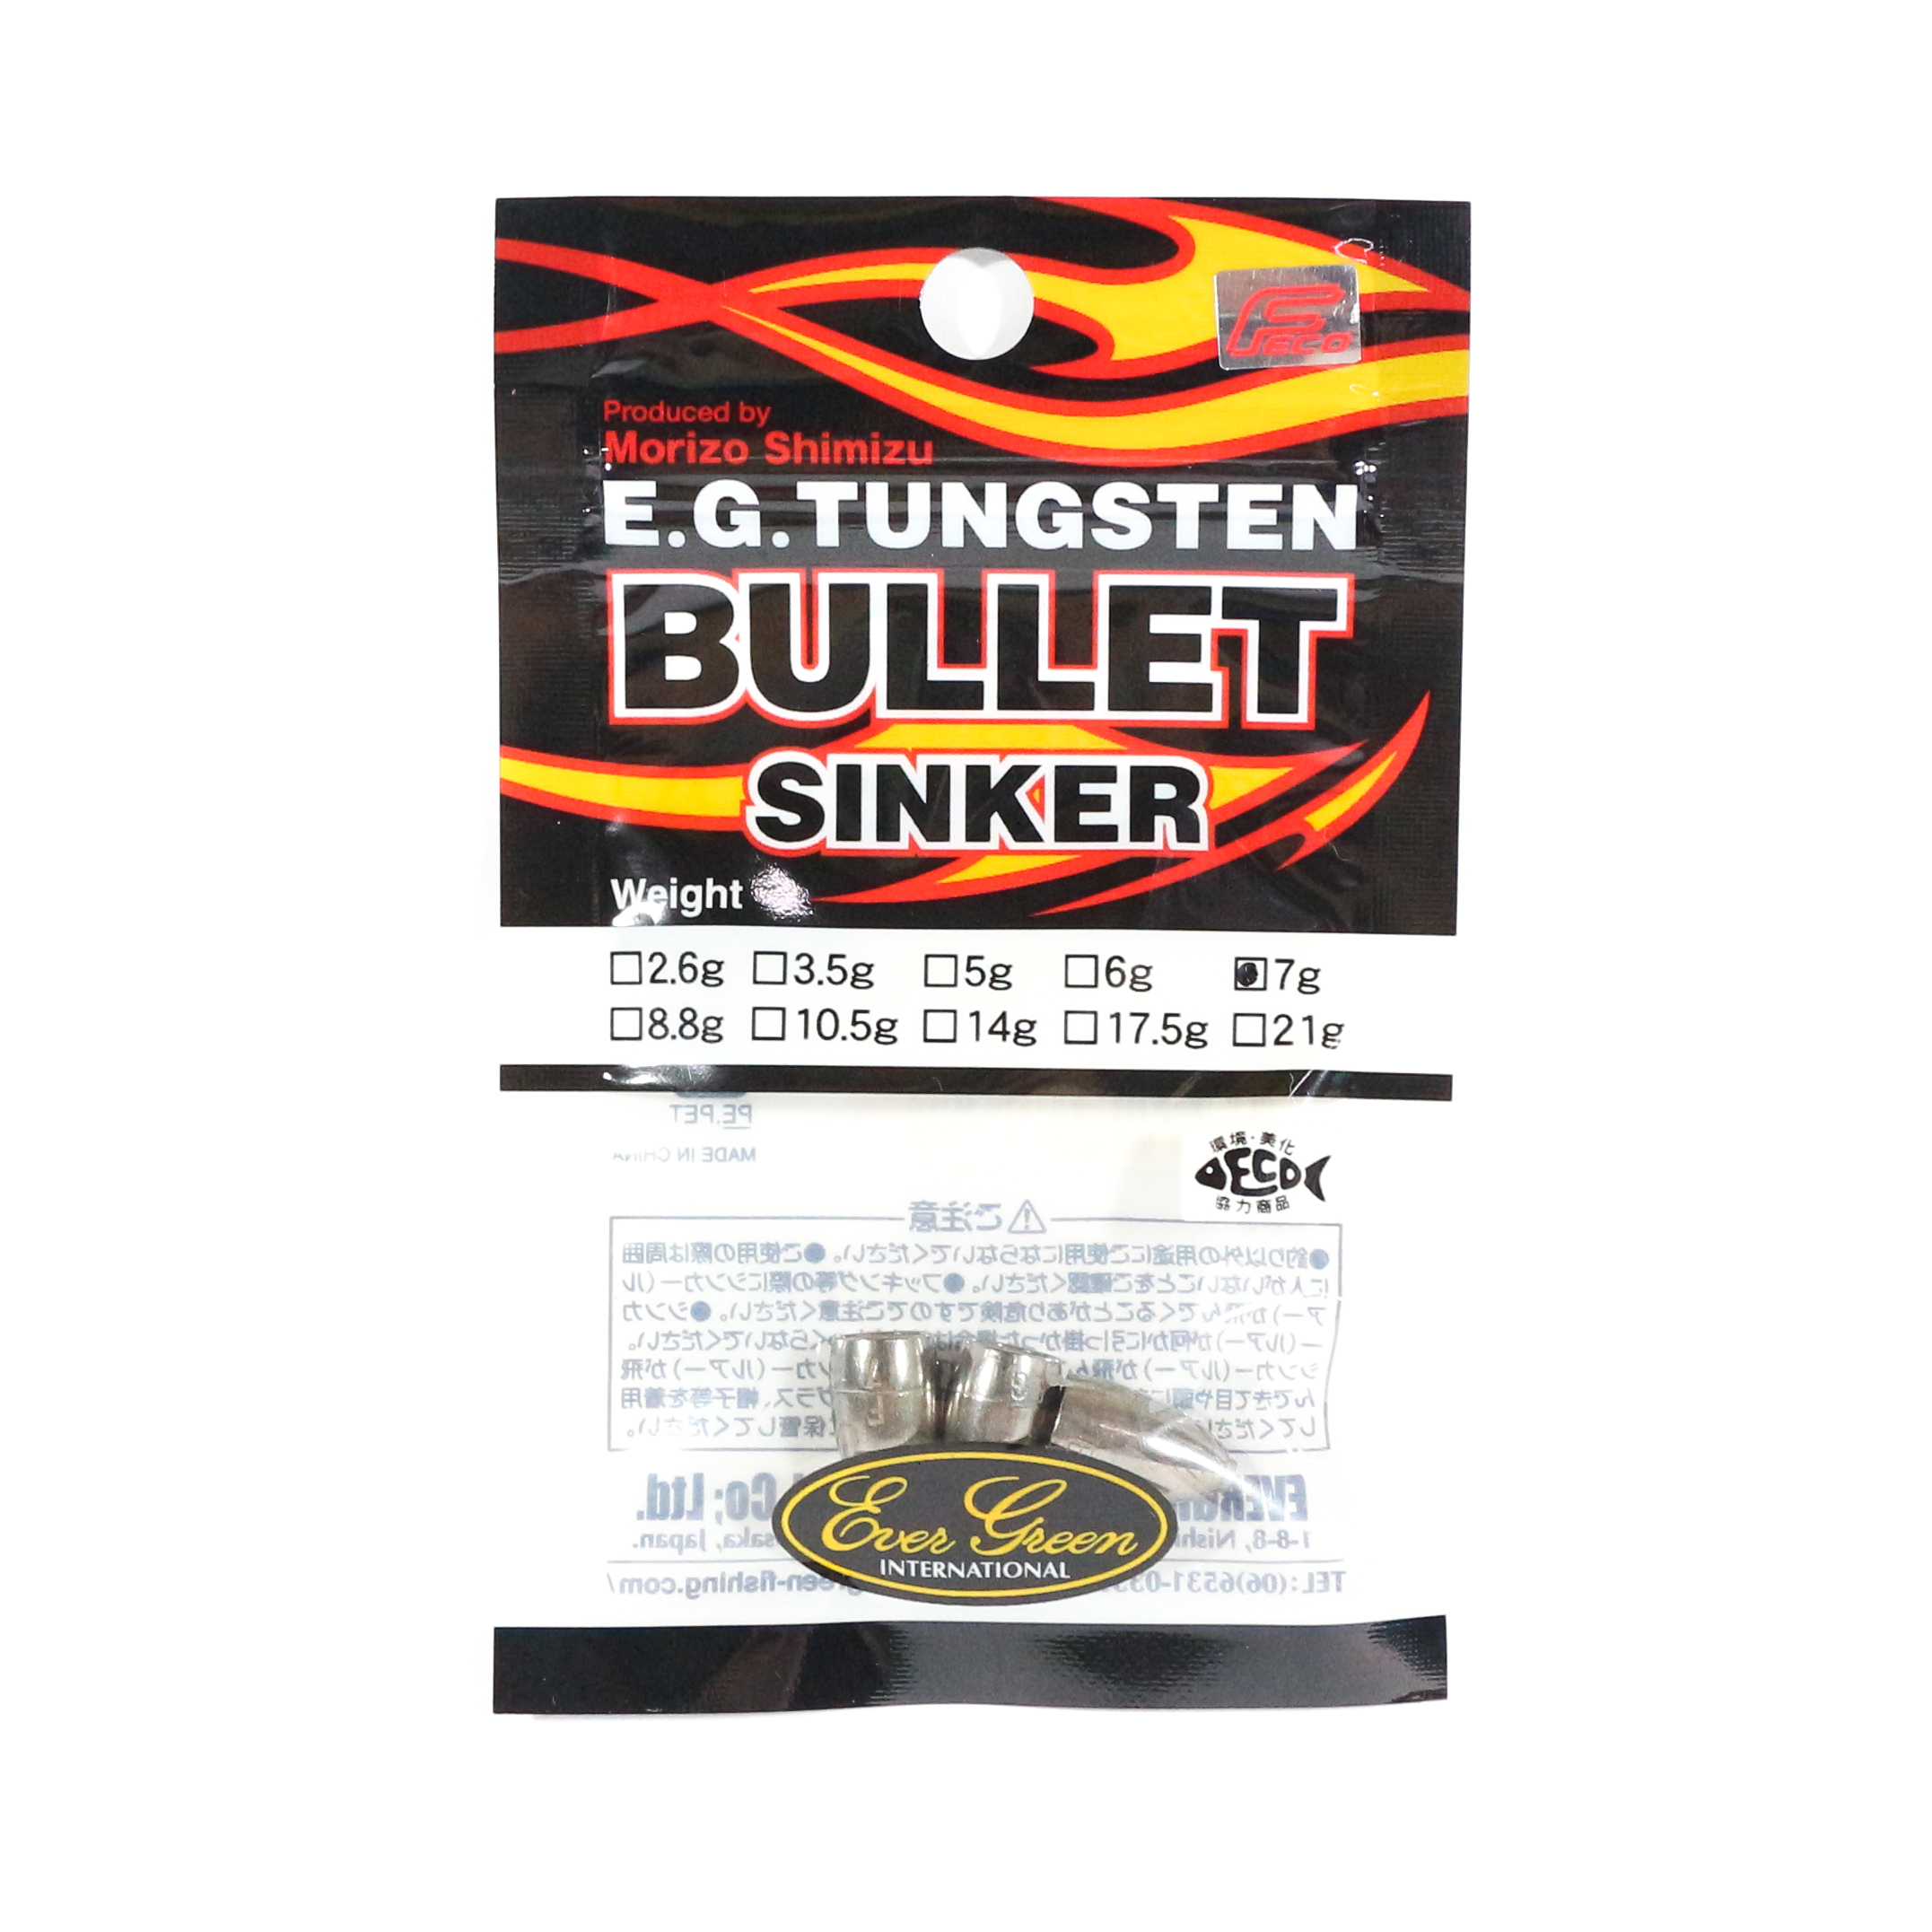 Evergreen Tungsten Bullet Sinker 1/4 oz (7 Grams) (1828)